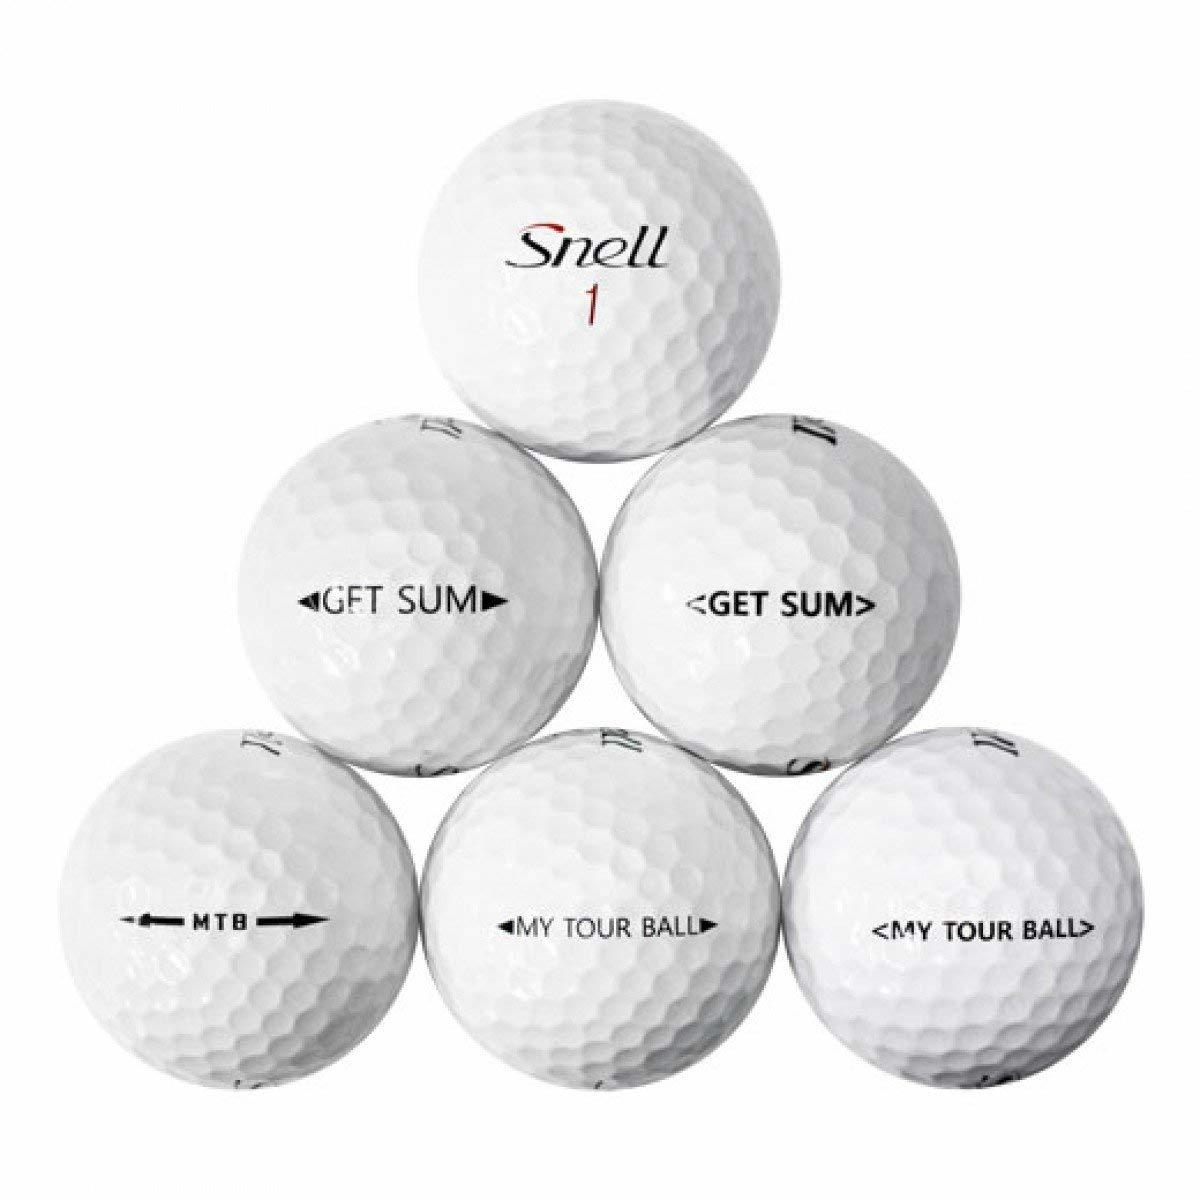 Diffirent kinds of snell golf balls